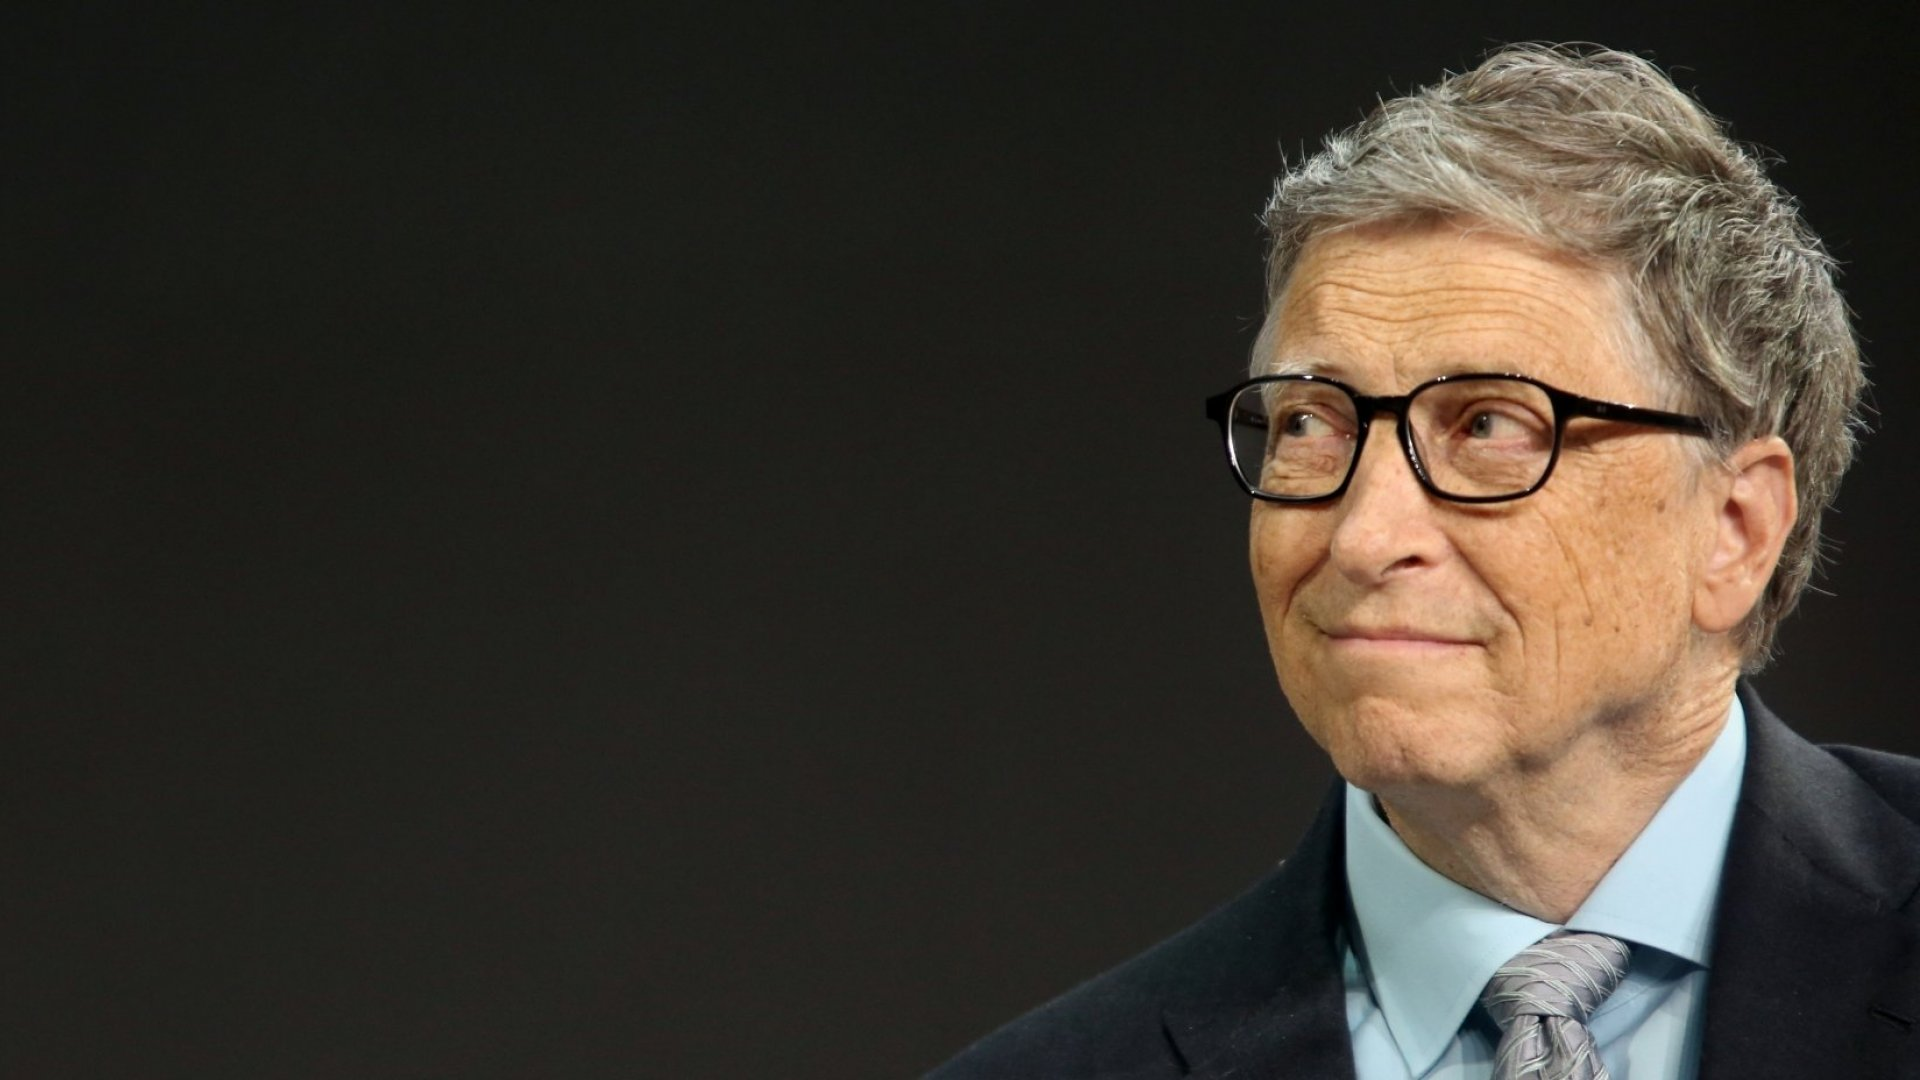 Bill Gates Reveals His Biggest Weakness and Teaches a Valuable Lesson in Leadership